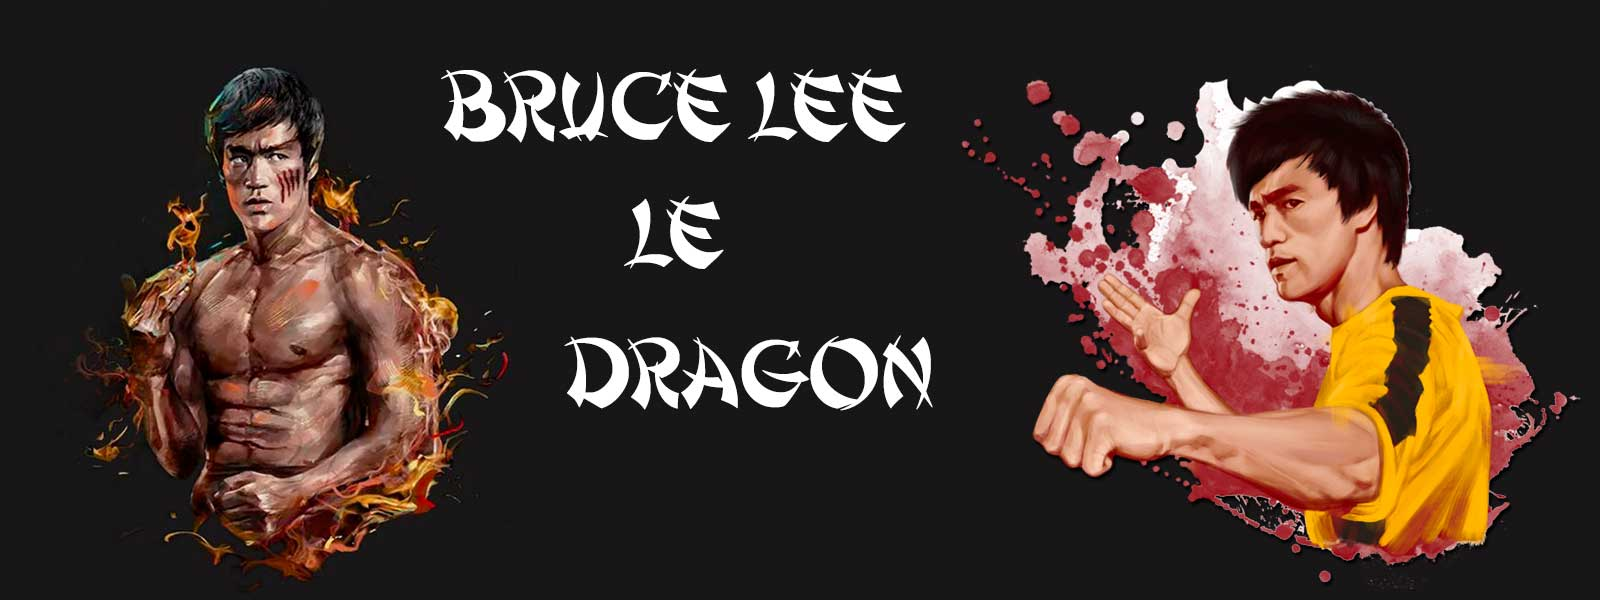 Bruce Lee le dragon